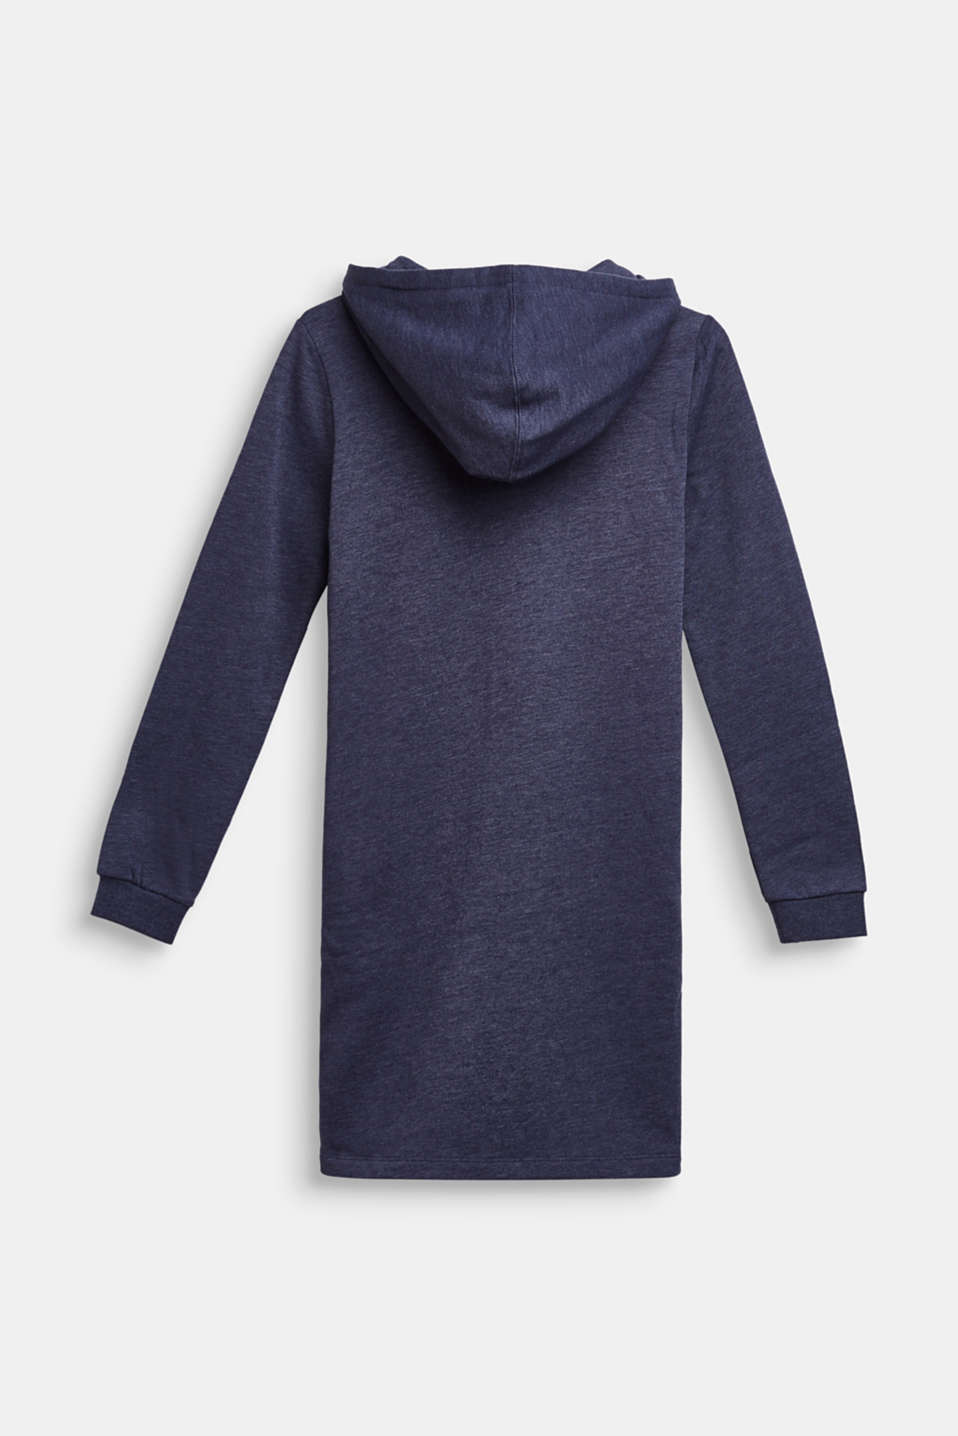 Hooded sweatshirt fabric dress, LCMIDNIGHT BLUE, detail image number 1